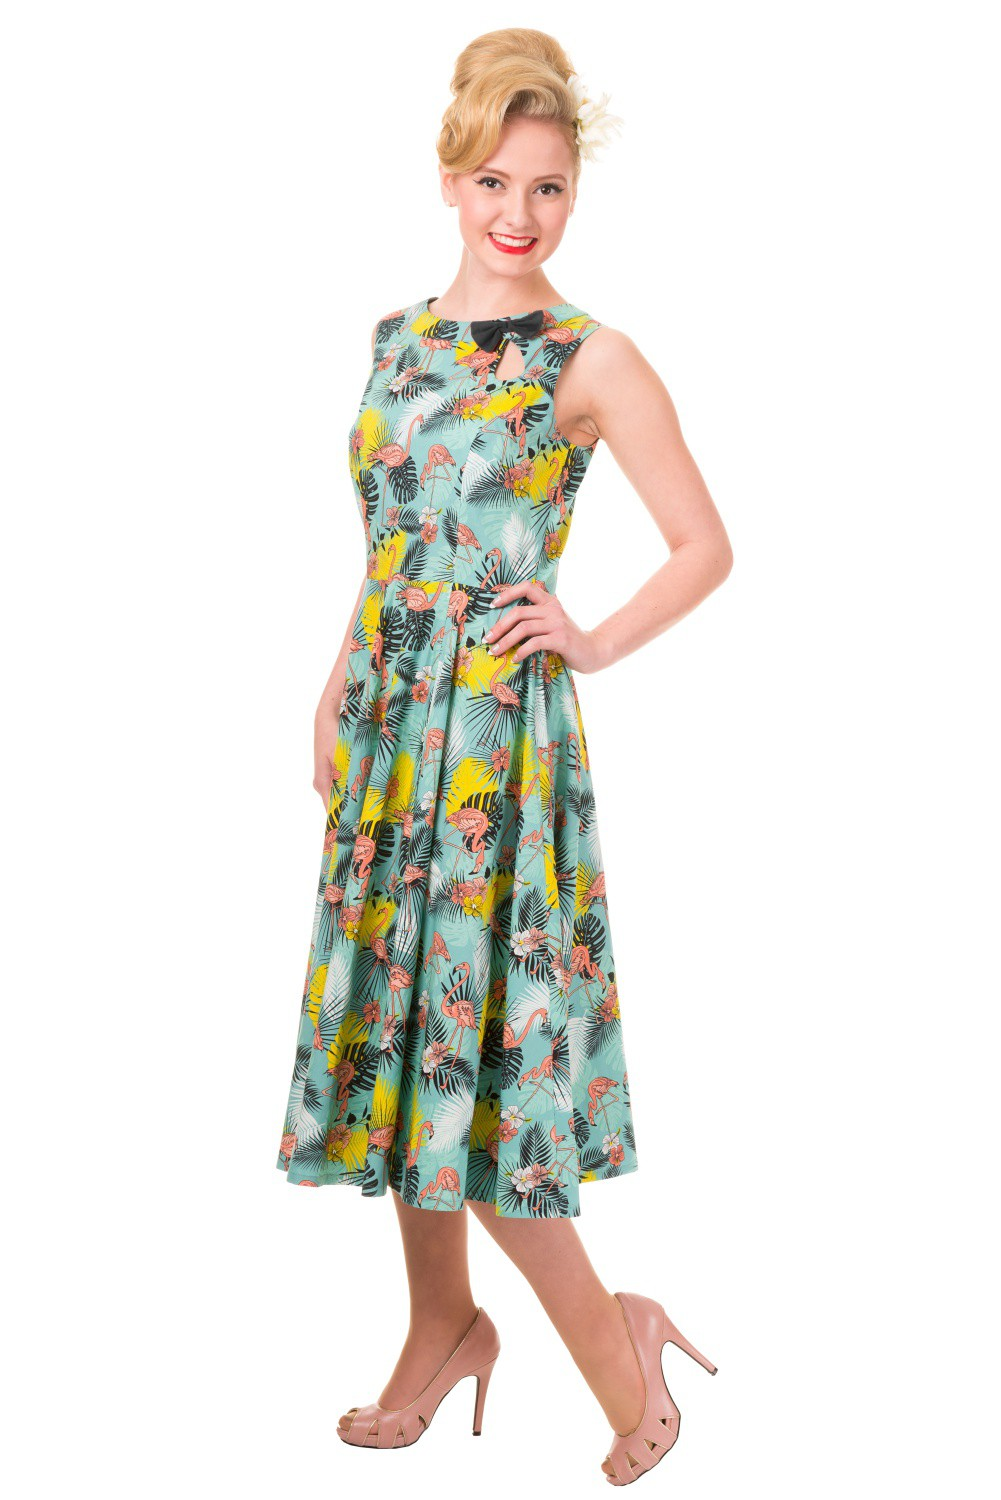 Banned Wonderlust Tropical Flamingo Rockabilly 50s Dress